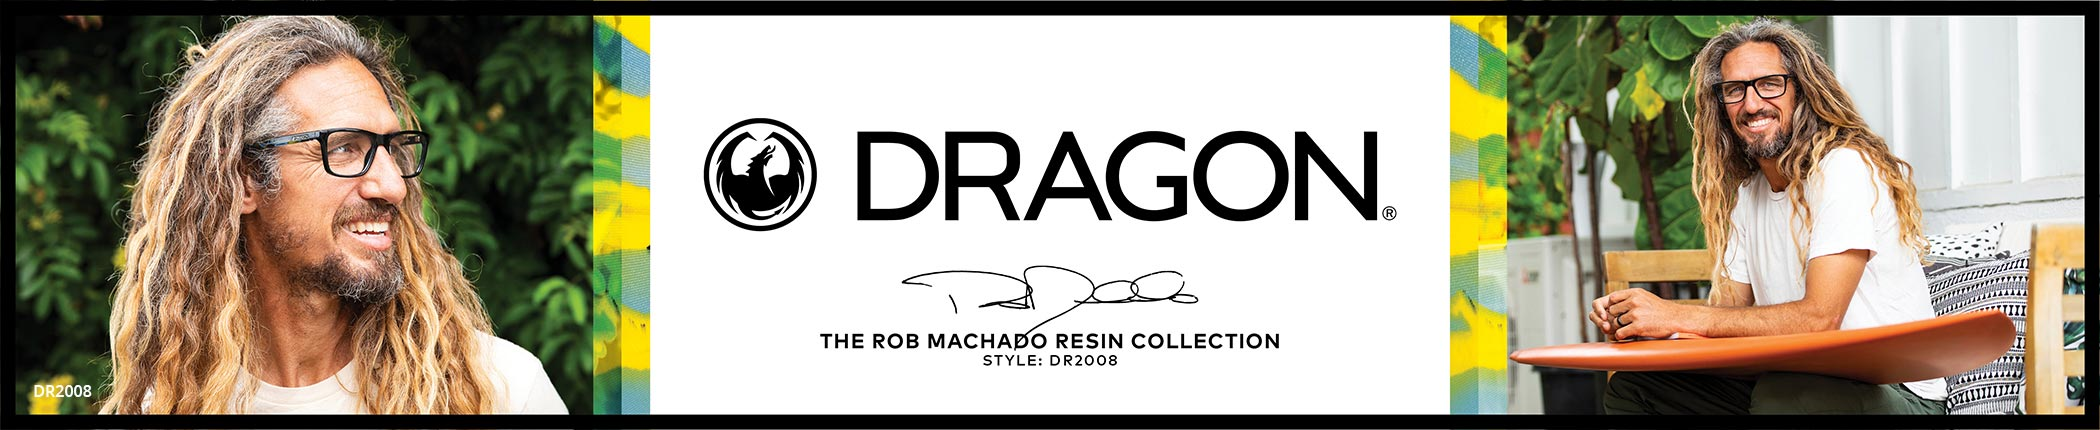 Shop Dragon Eyeglasses - featuring DR2008